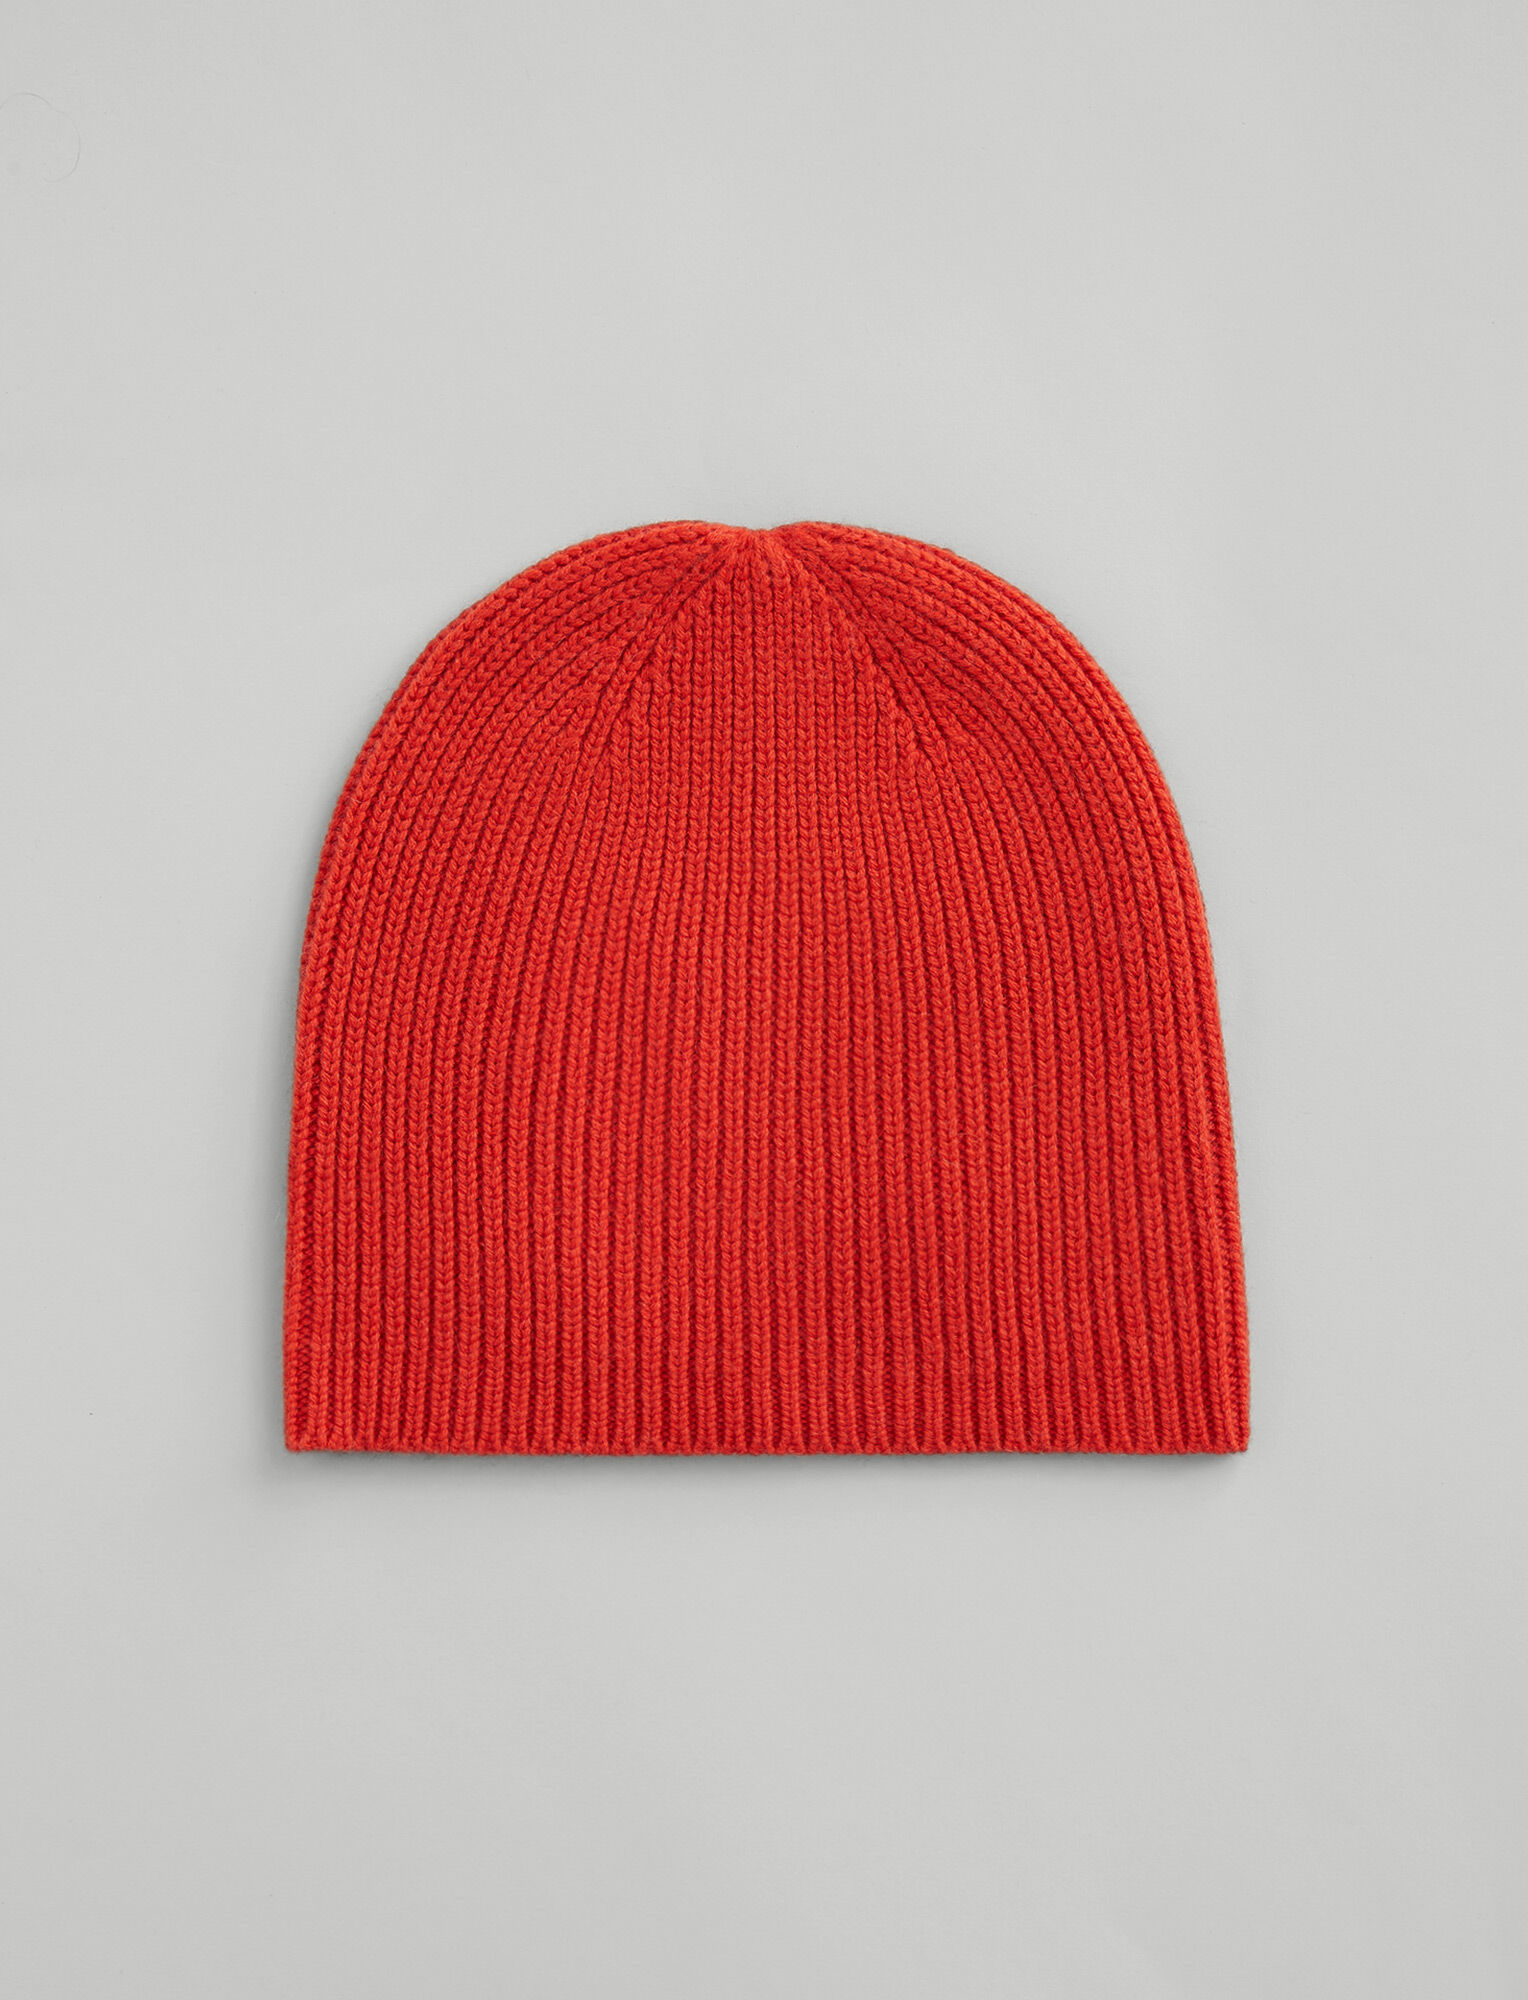 Joseph, Wool Cashmere Knit Hat, in DARK ORANGE